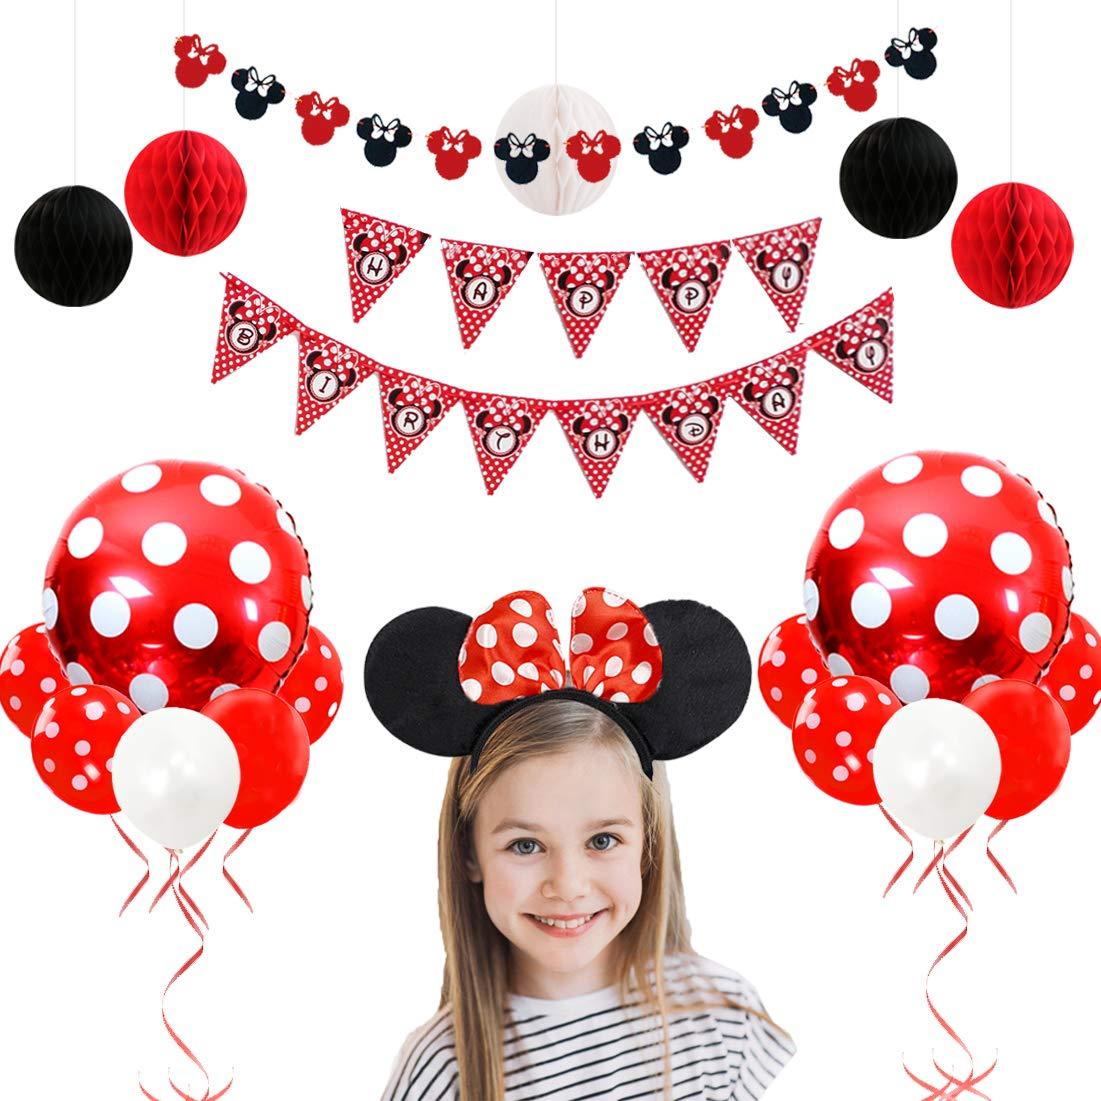 Minnie Mouse Birthday Decorations Red And Black For Girls With Ears Garland Headband Paper Honeycomb Balls Balloons Amazonca Health